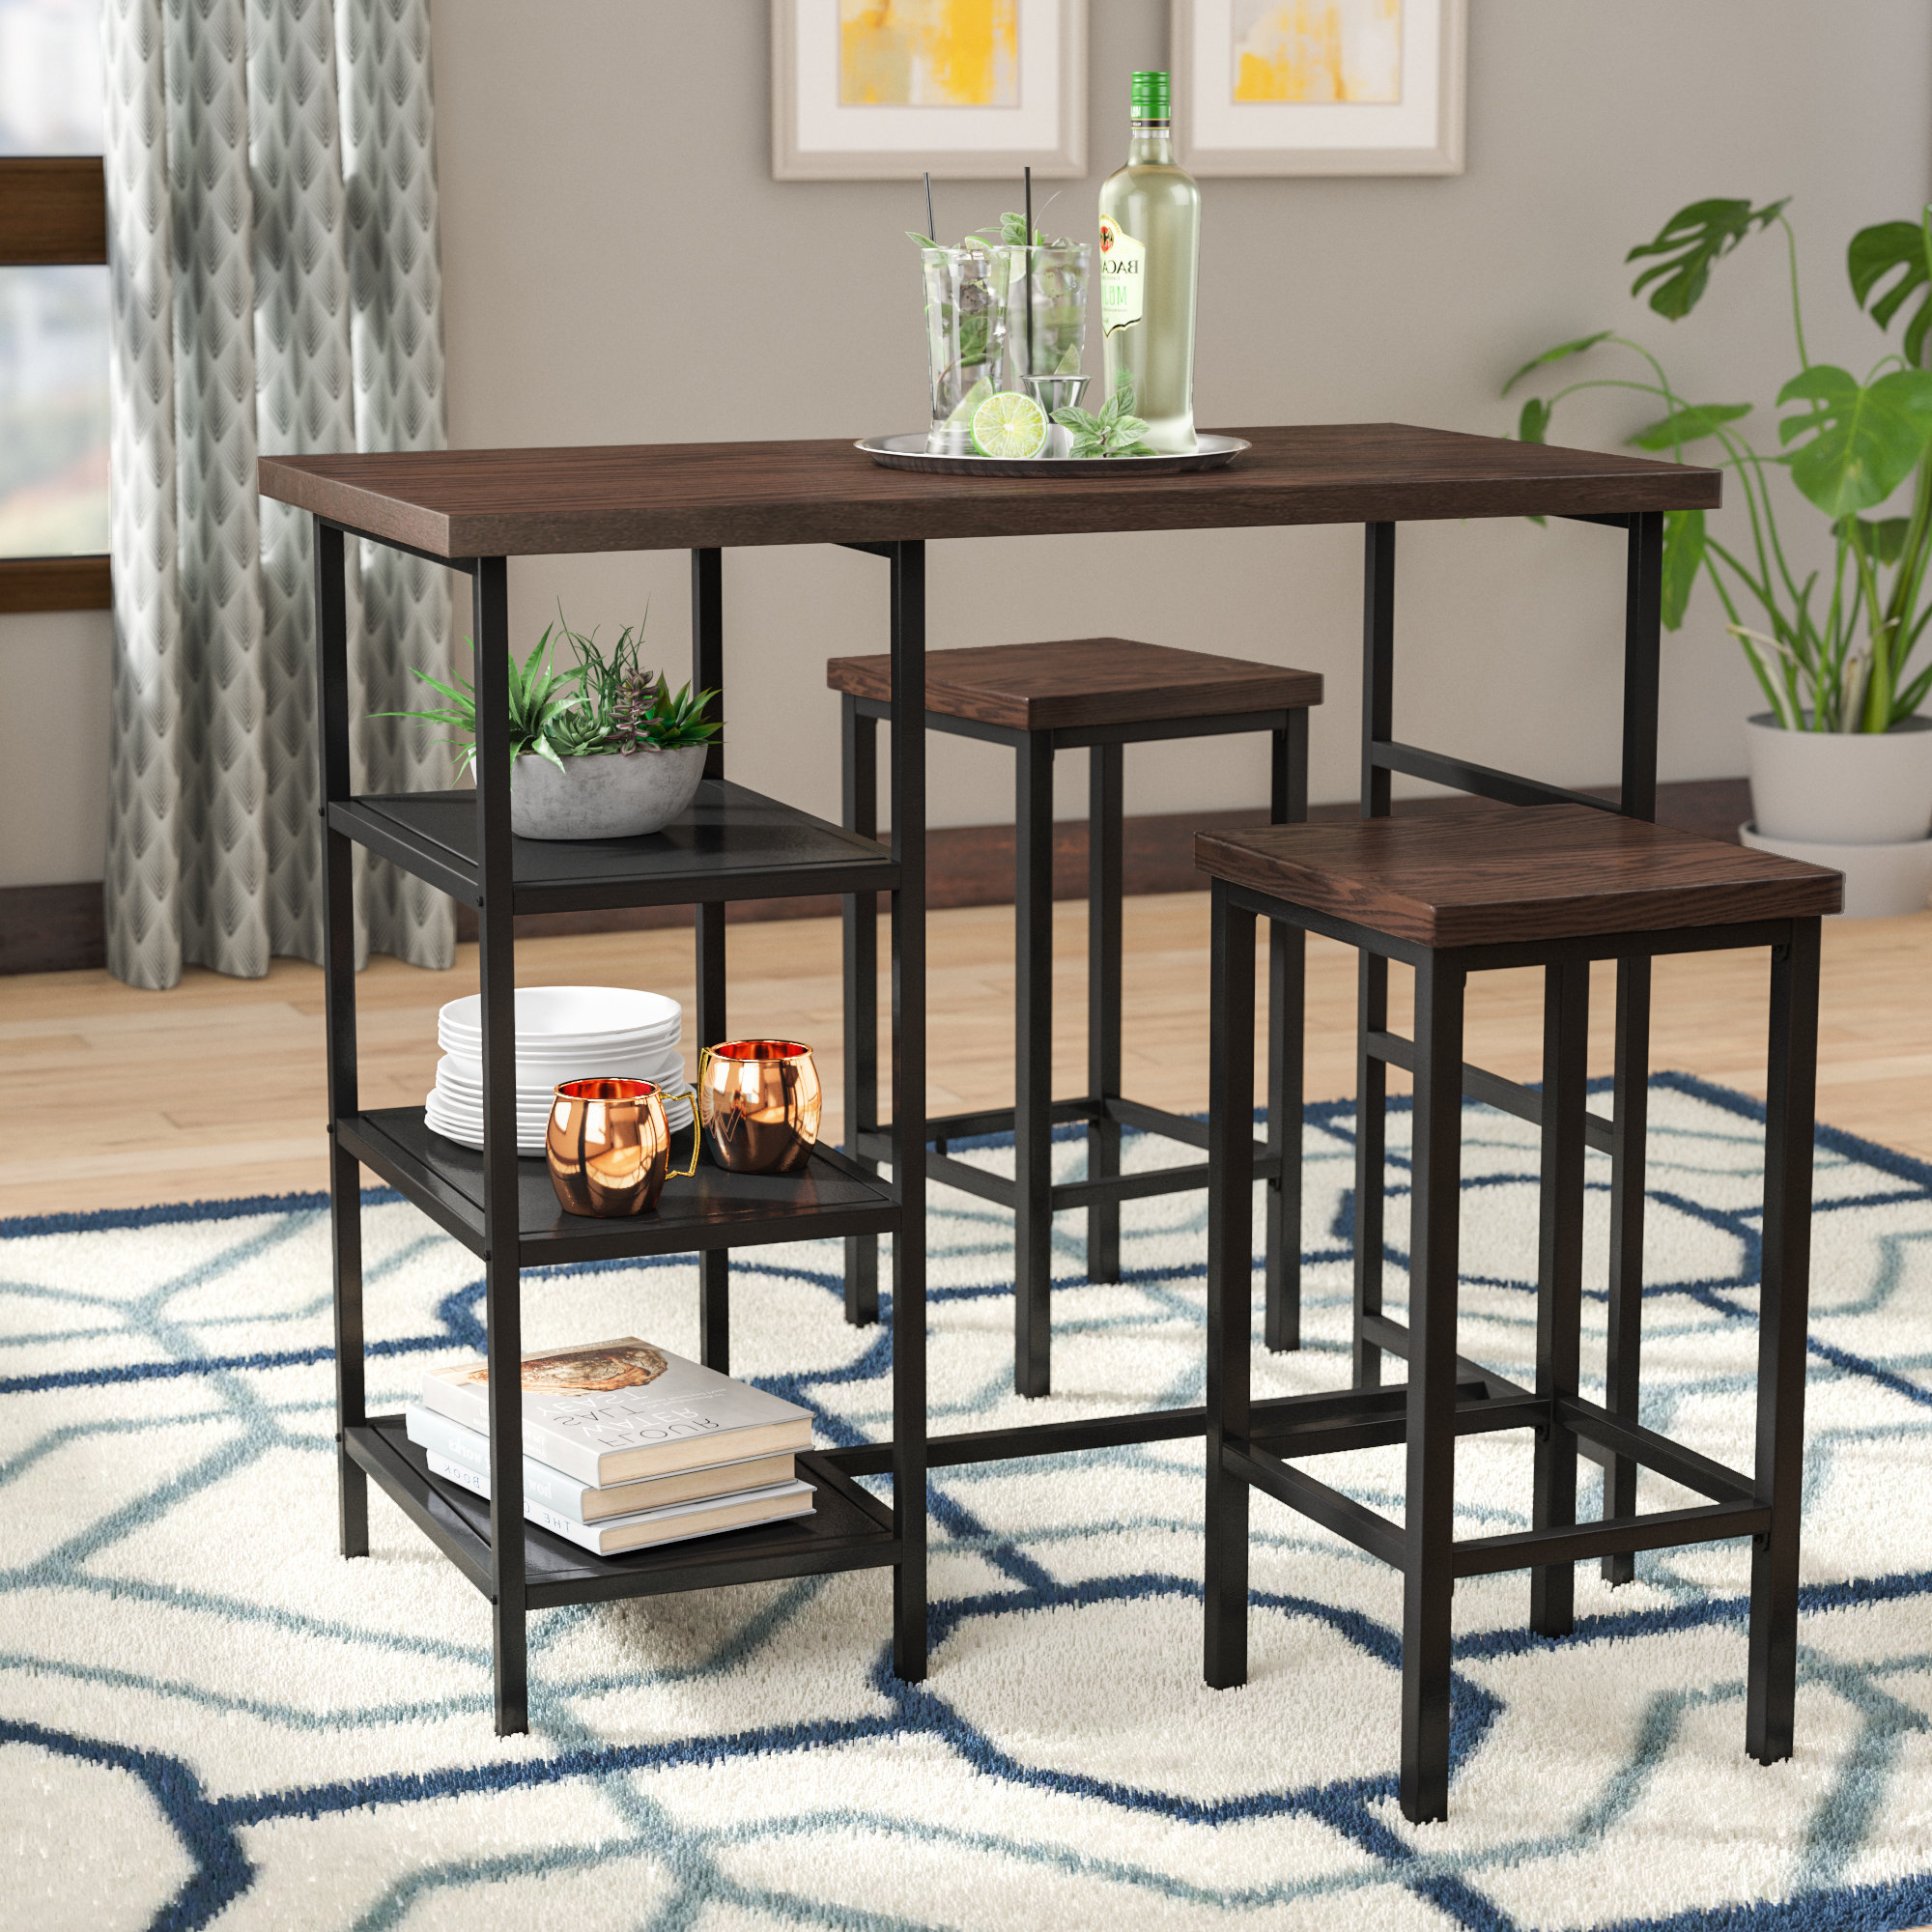 Trendy Du Bois 3 Piece Pub Table Set Regarding Kernville 3 Piece Counter Height Dining Sets (View 6 of 20)